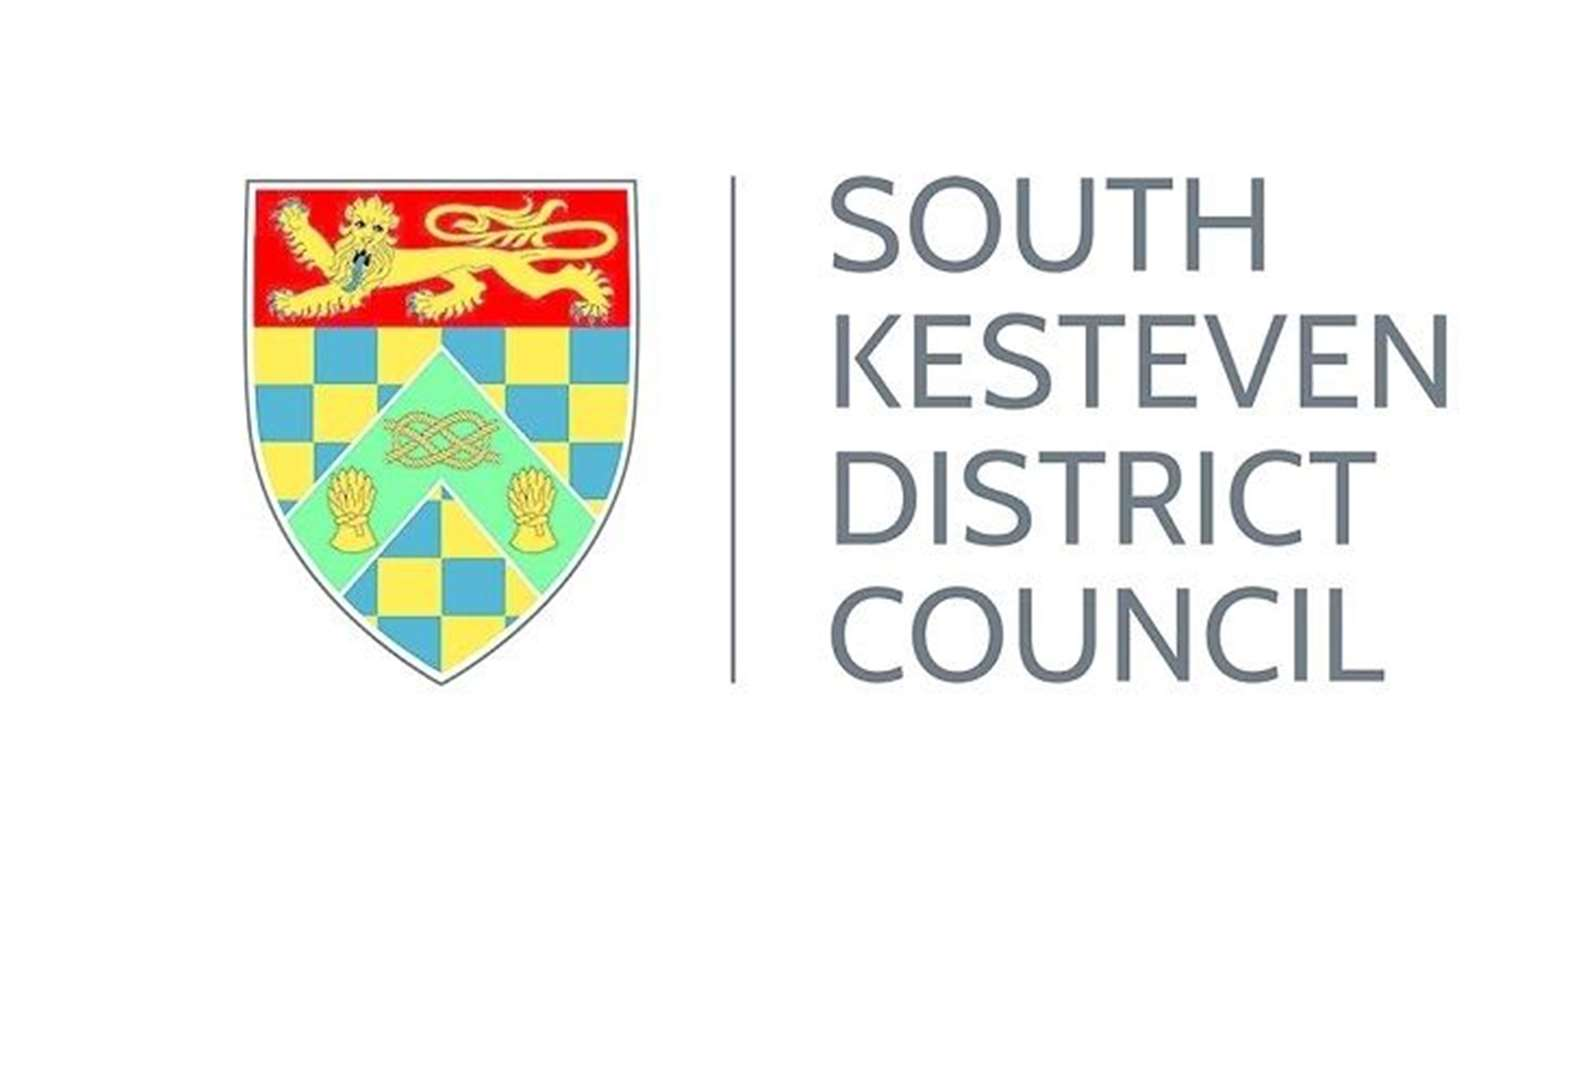 South Kesteven District Council rejects claim of 'poor' progress on environment from Friends of the Earth